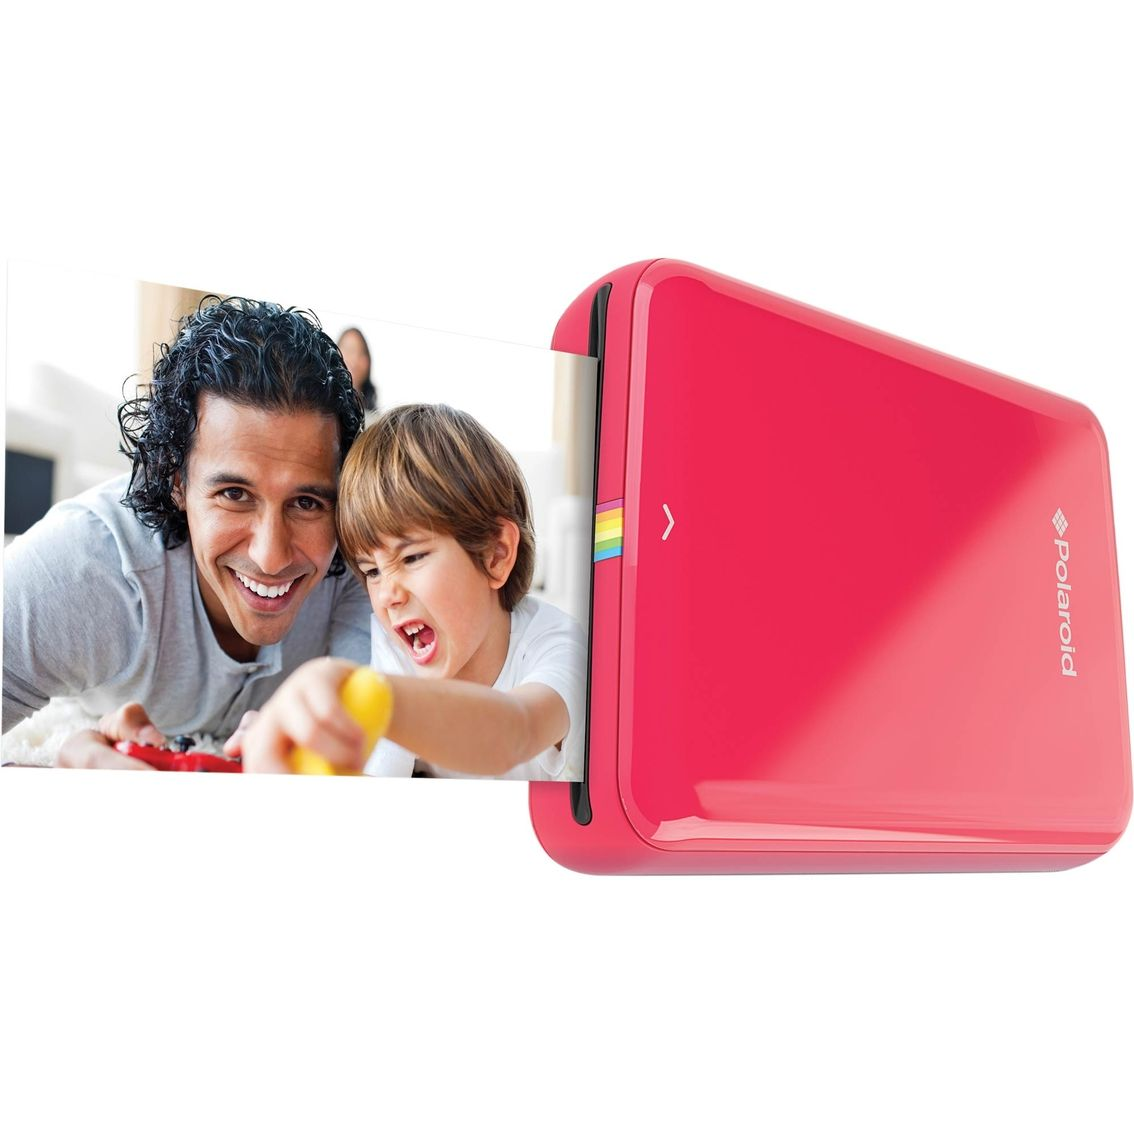 Polaroid print from your tablet or iPhone photos are